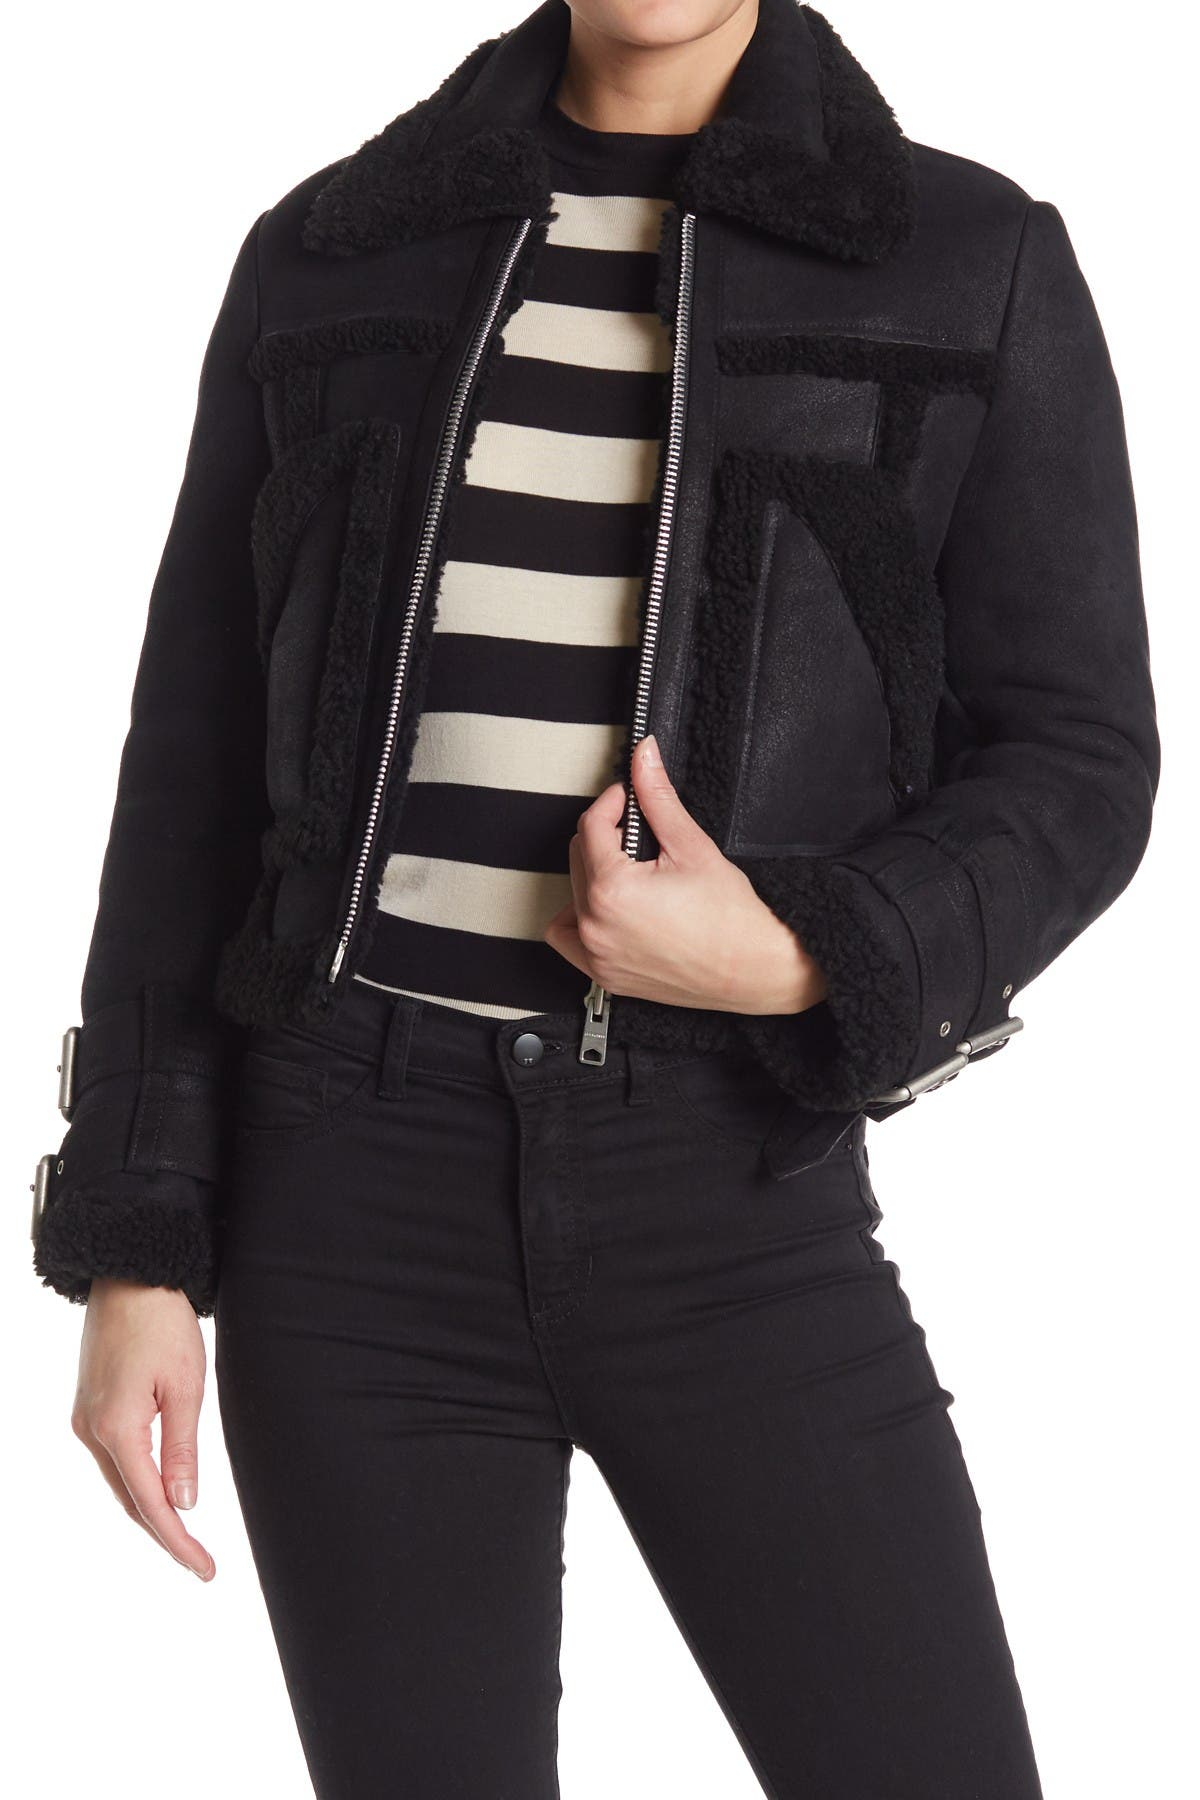 Image of ALLSAINTS Asher Leather Genuine Shearling Lined Jacket